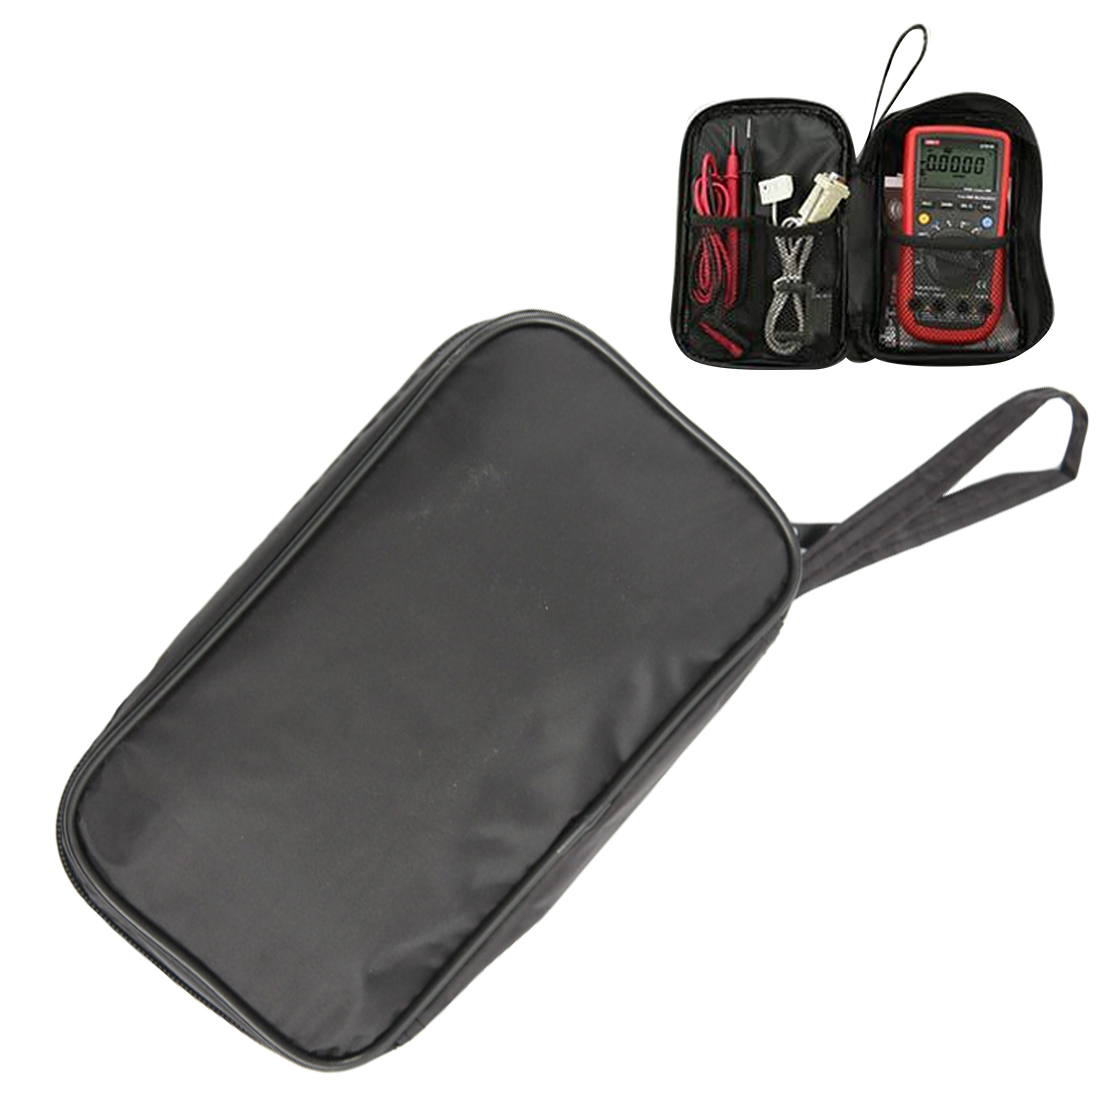 20*12*4cm Black Waterproof Tools Bag Case For UT61 Series Digital Multimeter Cloth DurableCanvas Bag